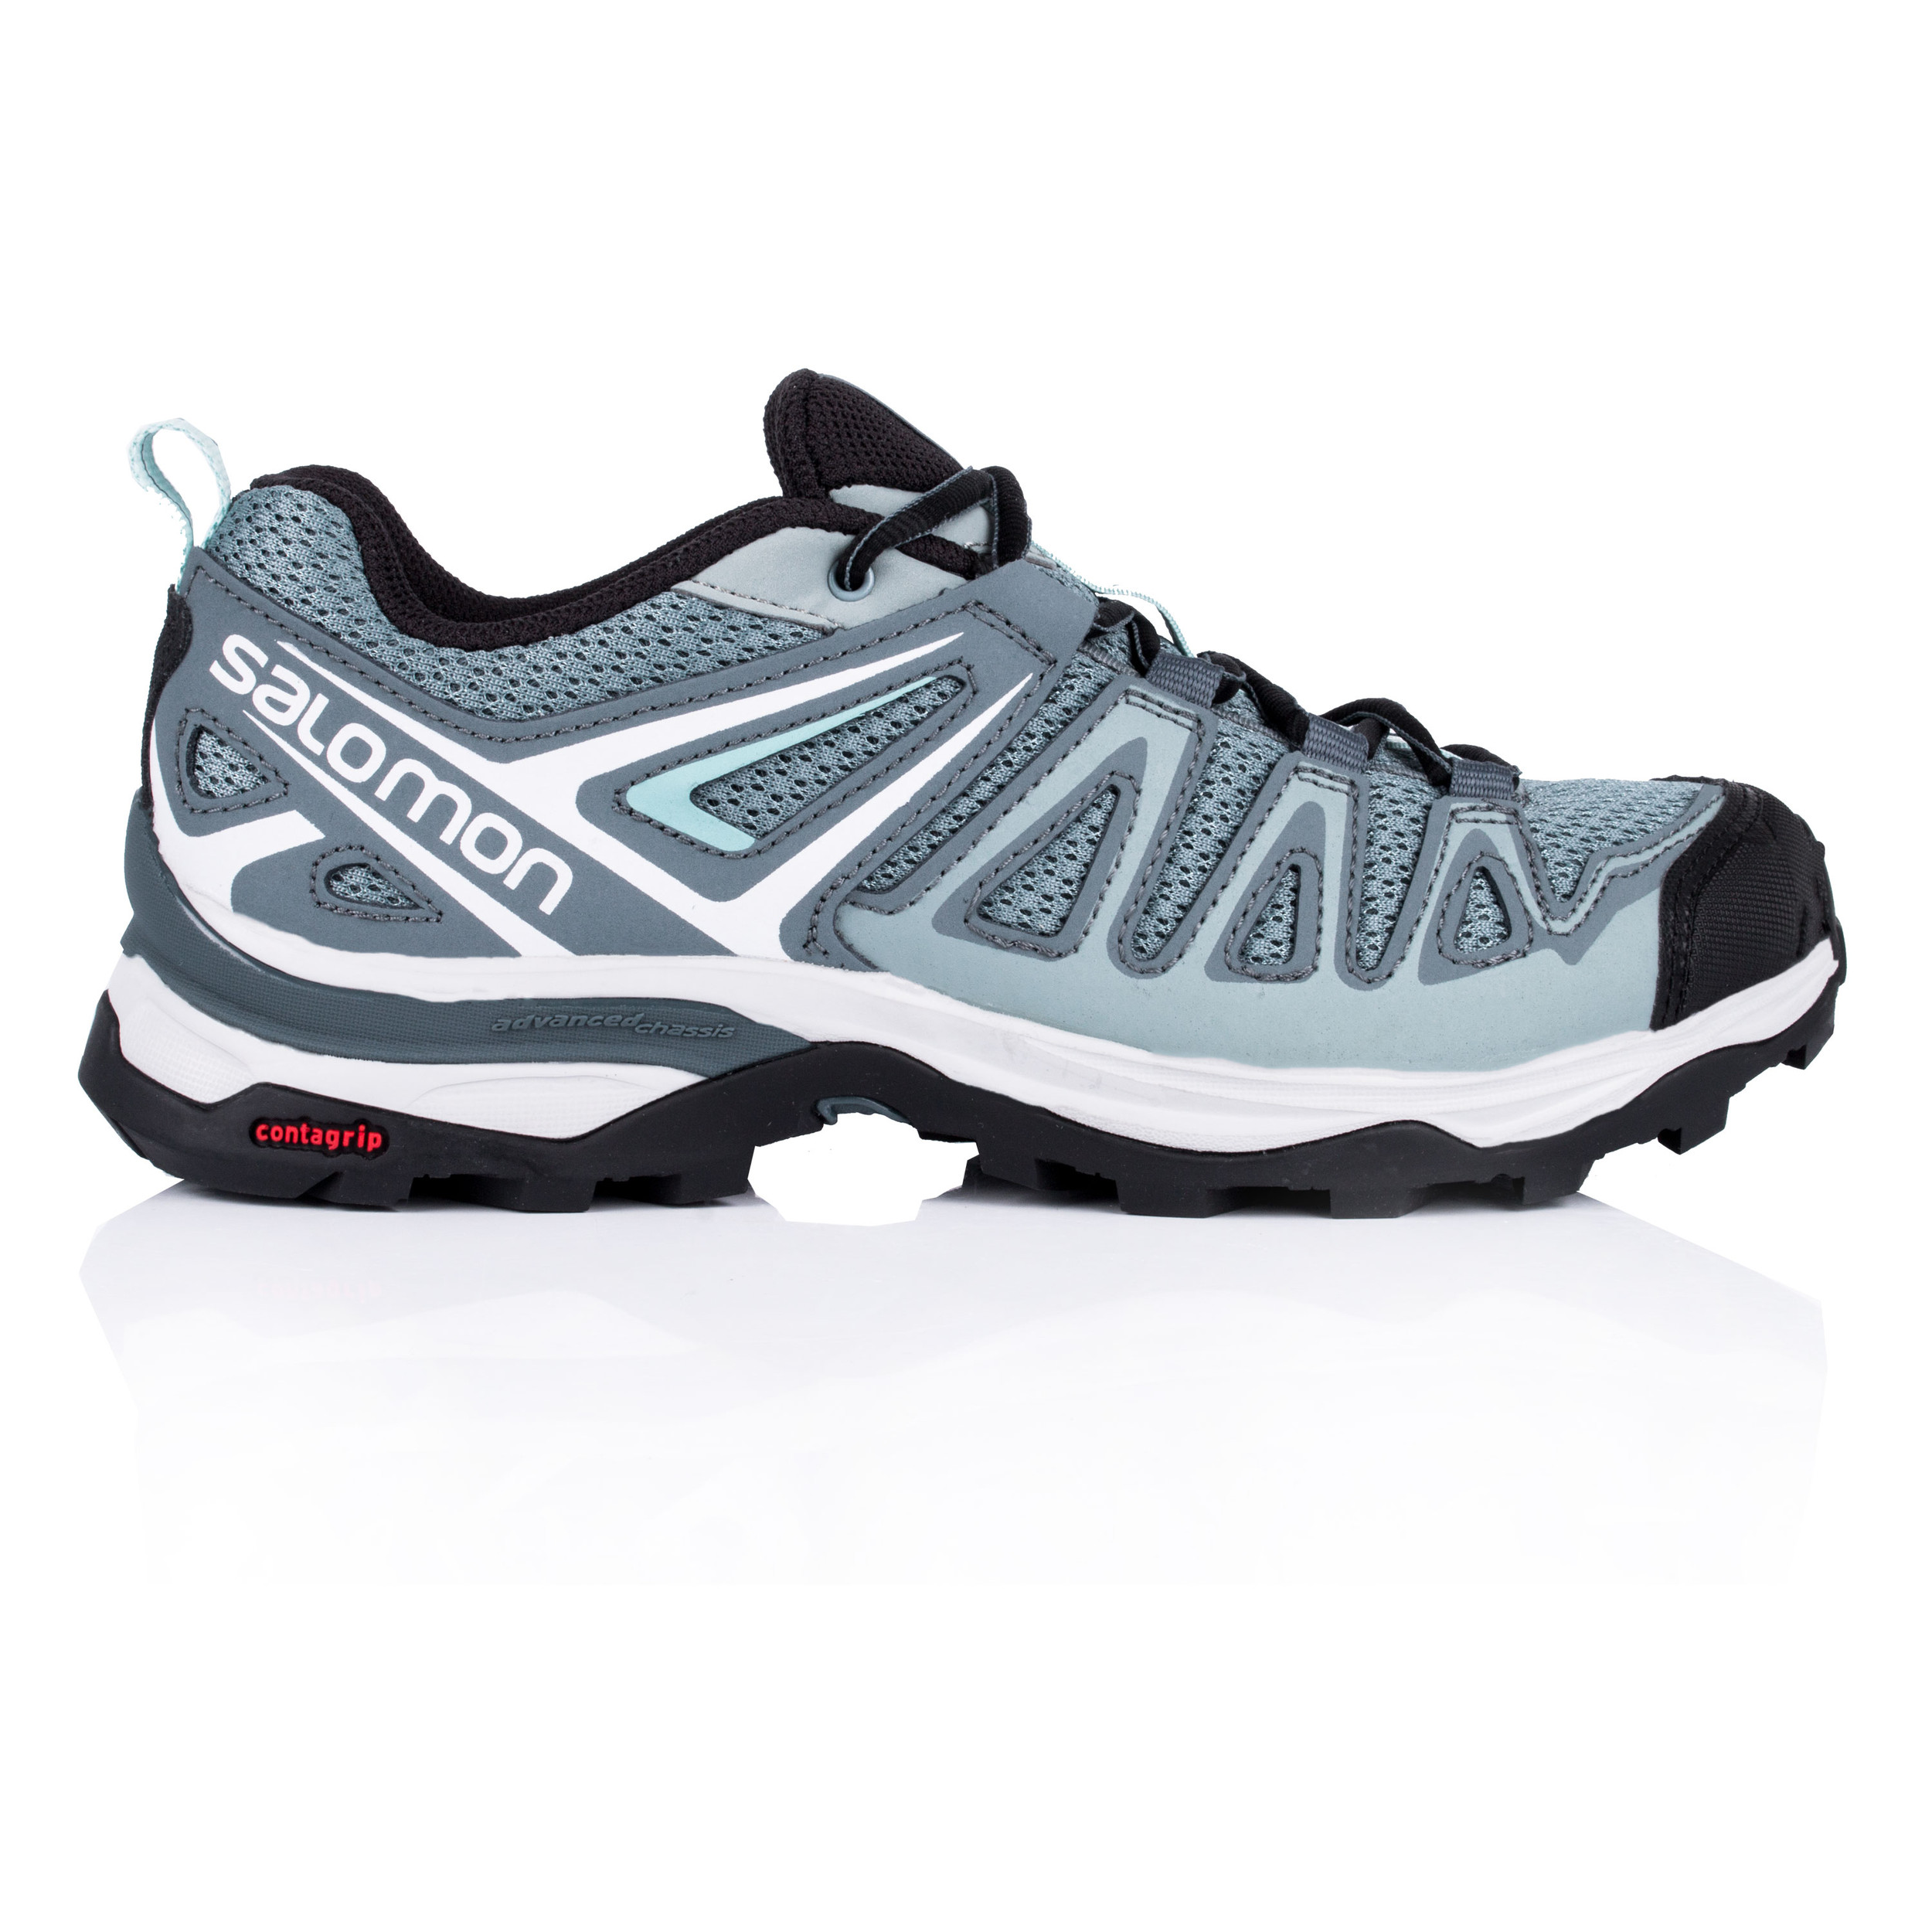 96a9214d5eed Details about Salomon Womens X Ultra 3 Prime Walking Shoe Blue Sports  Breathable Trainers